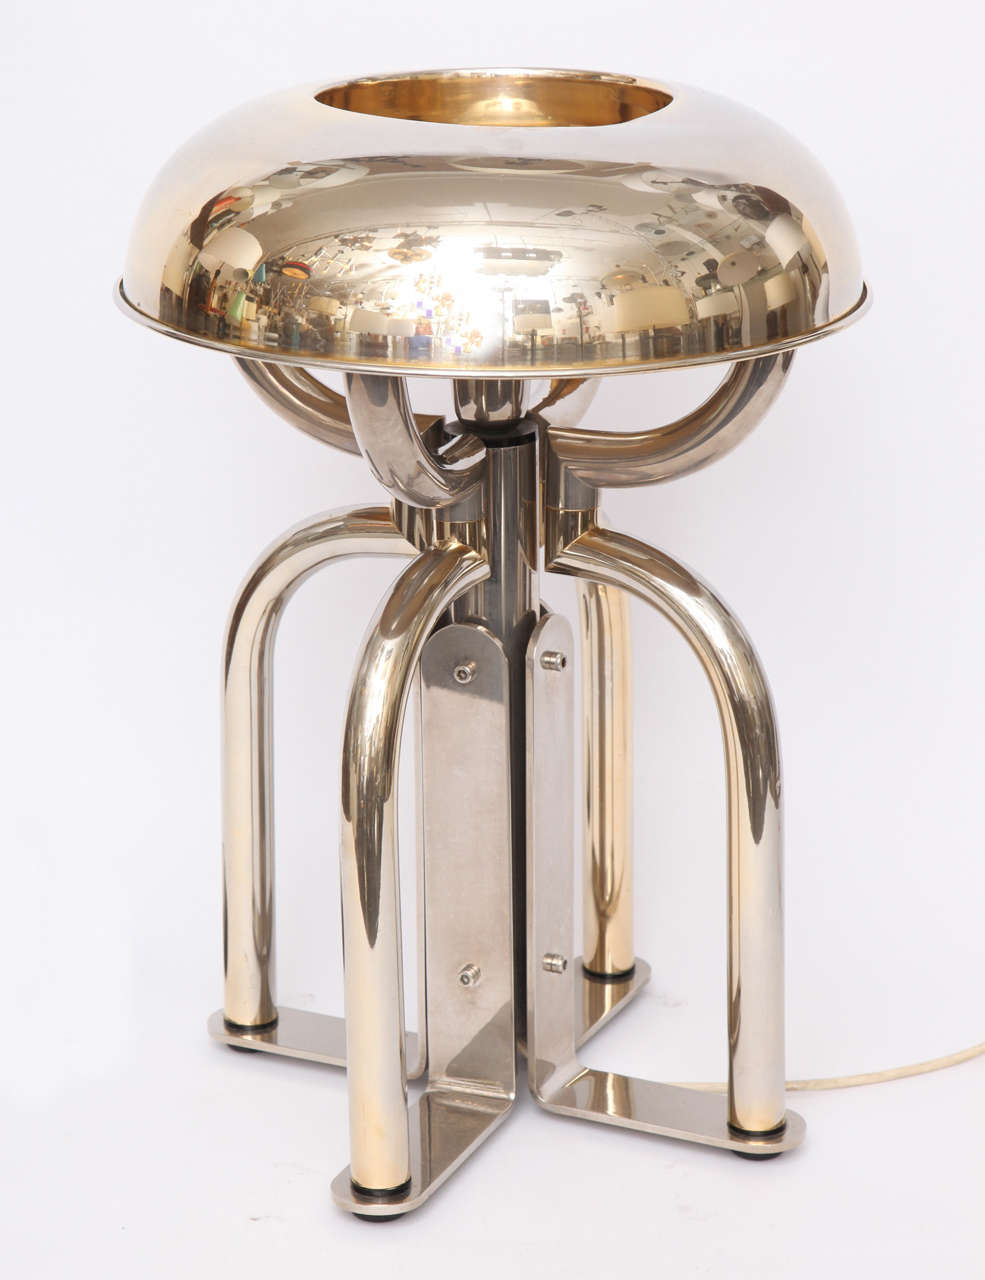 A 1970s French architectural brass and nickel table lamp.